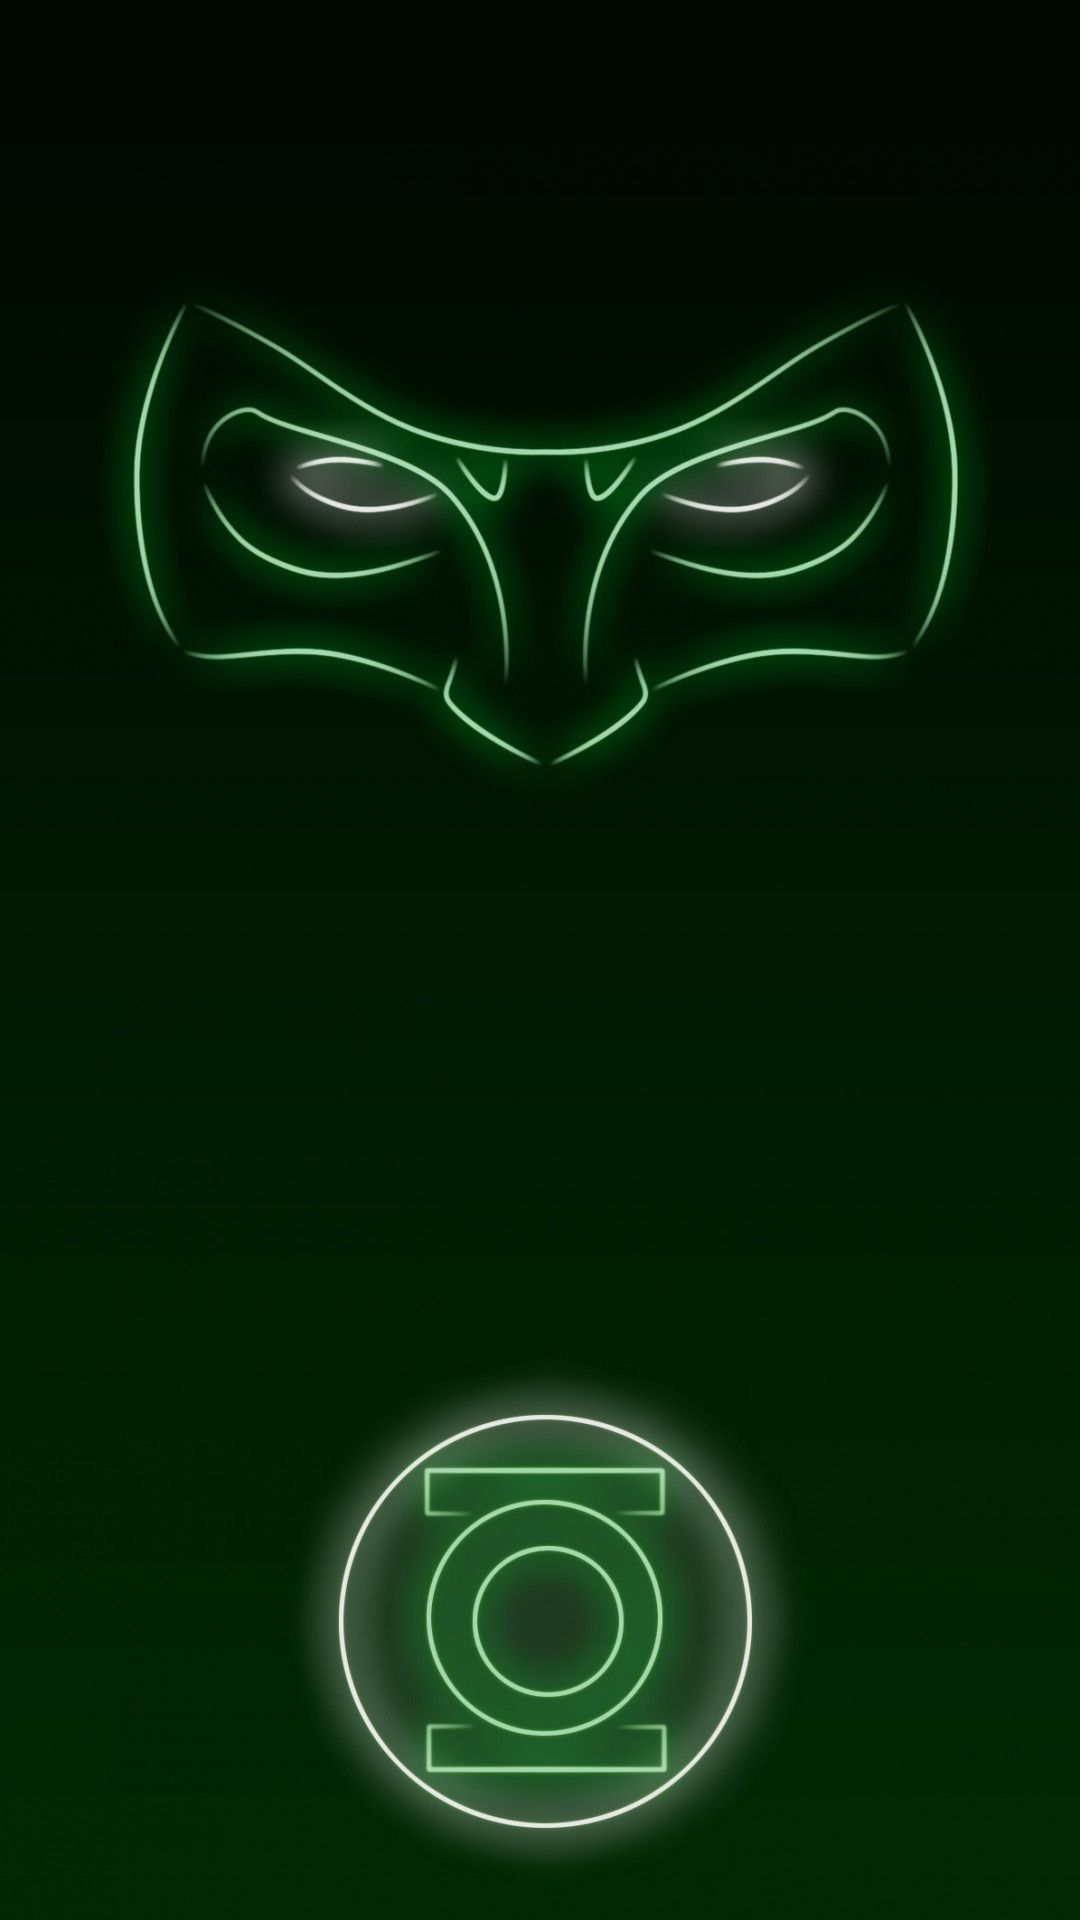 neon light hero green lantern 1080 x 1920 wallpapers available for